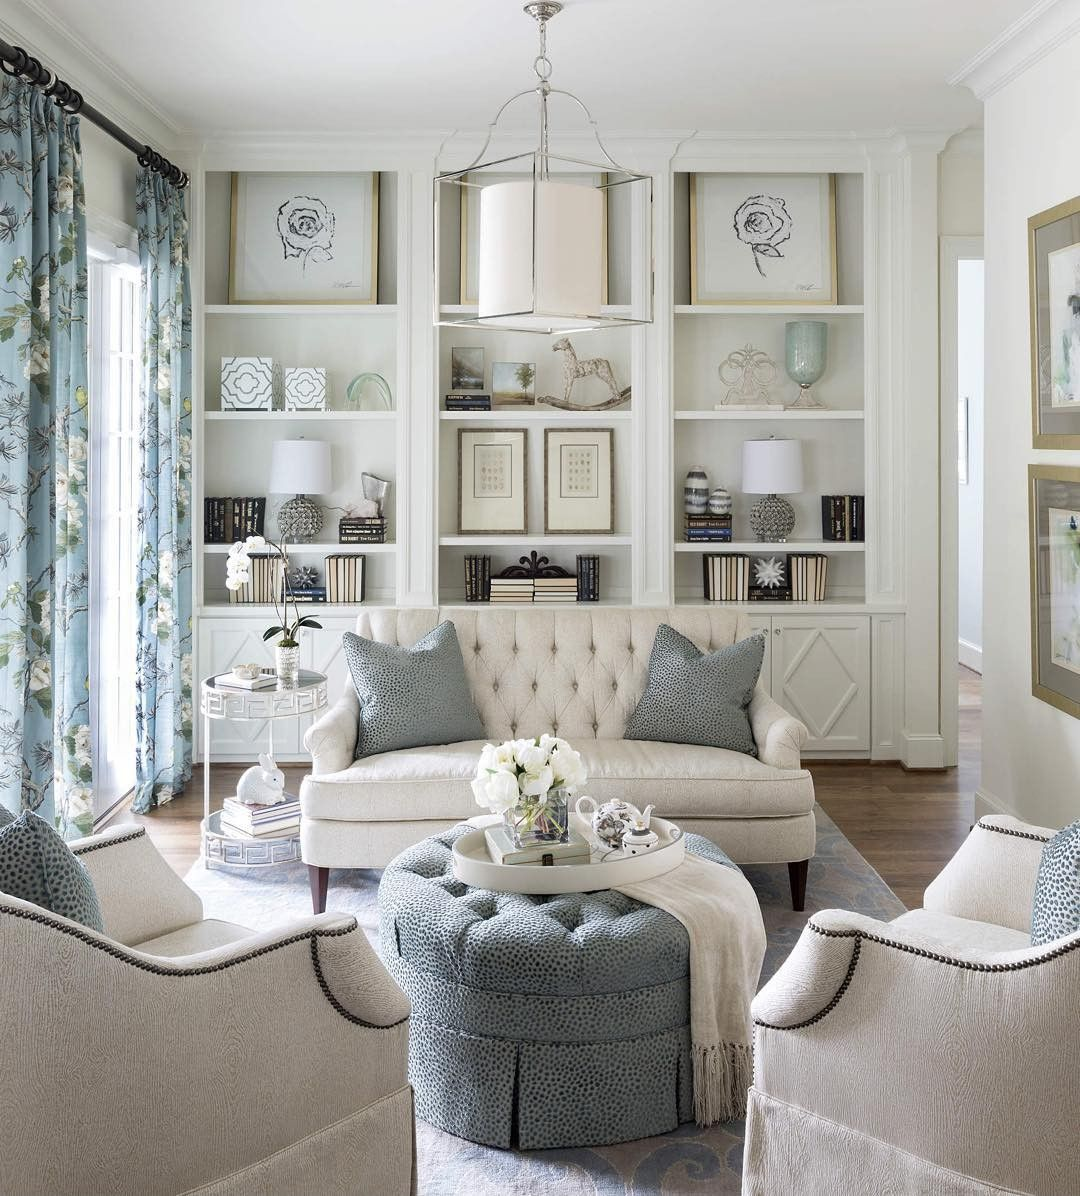 16 stunning french style living room ideas house and on amazing inspiring modern living room ideas for your home id=39654